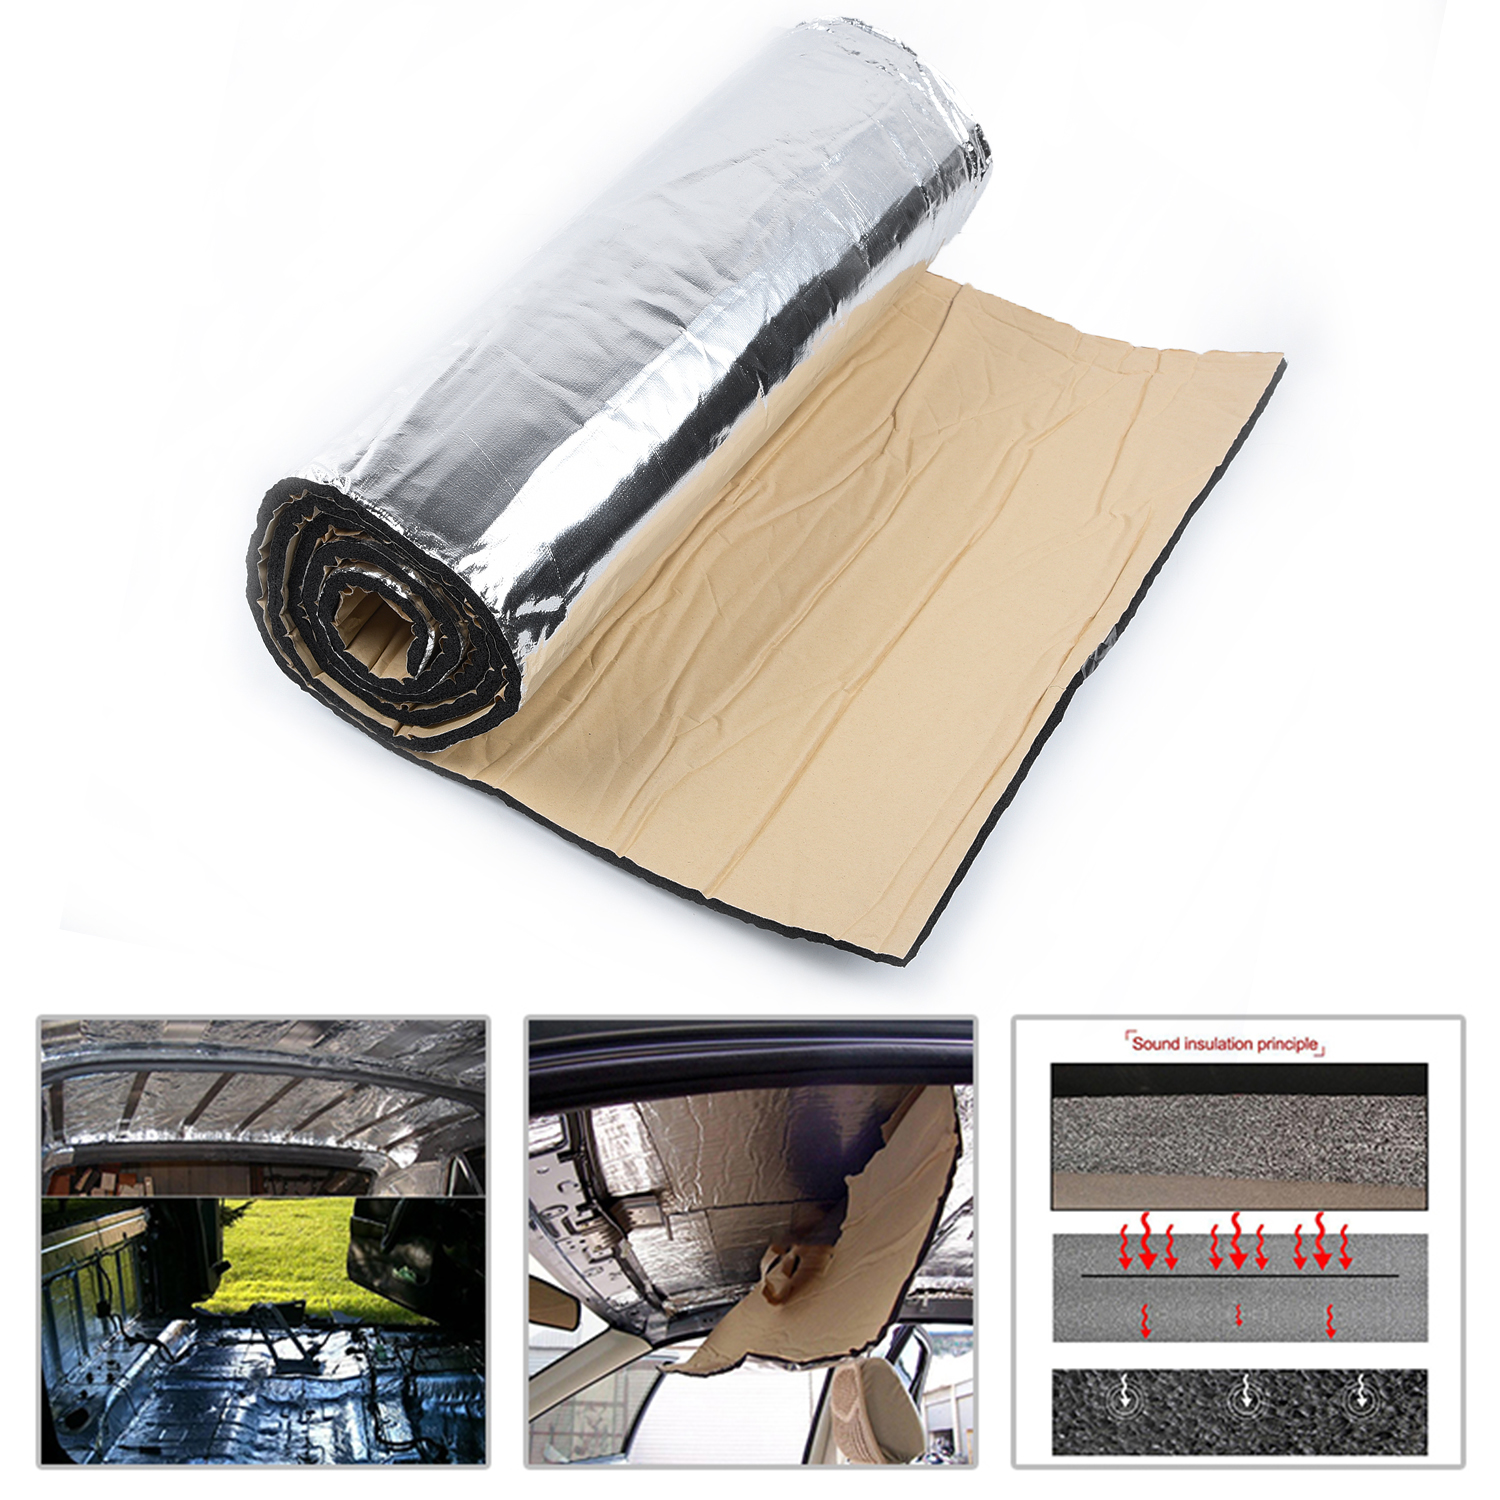 50*200cm Car Truck Firewall Heat Sound Deadener Insulation Mat Noise Insulation Wool Sound Thermal Proofing Pad Car Styling 10mm